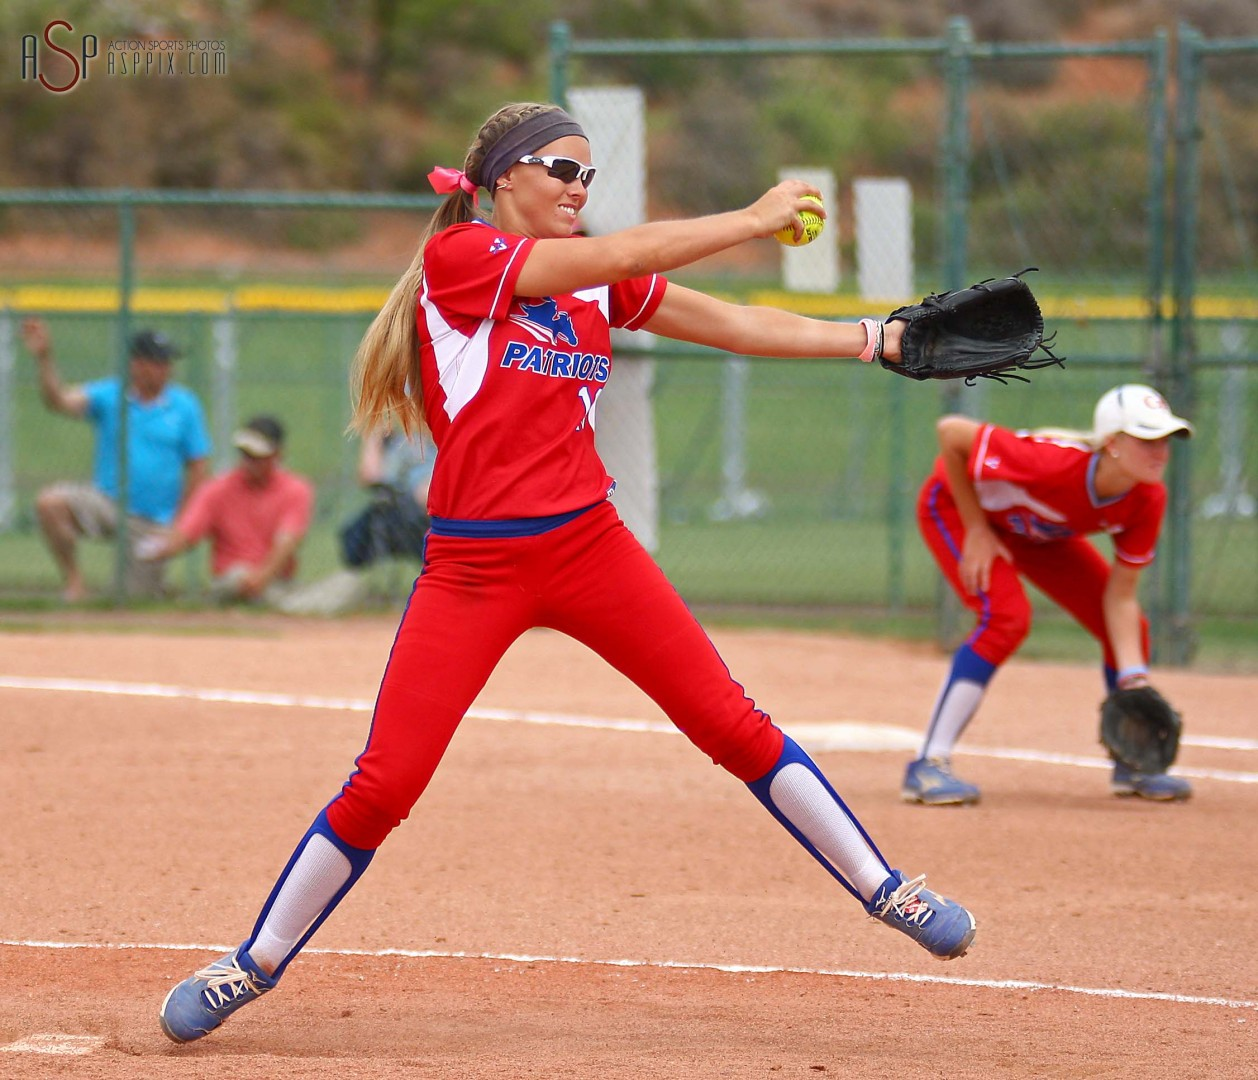 NJCAA softball World Series at The Canyons Softball Complex, Angelina vs Central Florida. St. George, Utah, May 17 2014 | Photo by Robert Hoppie, St. George News